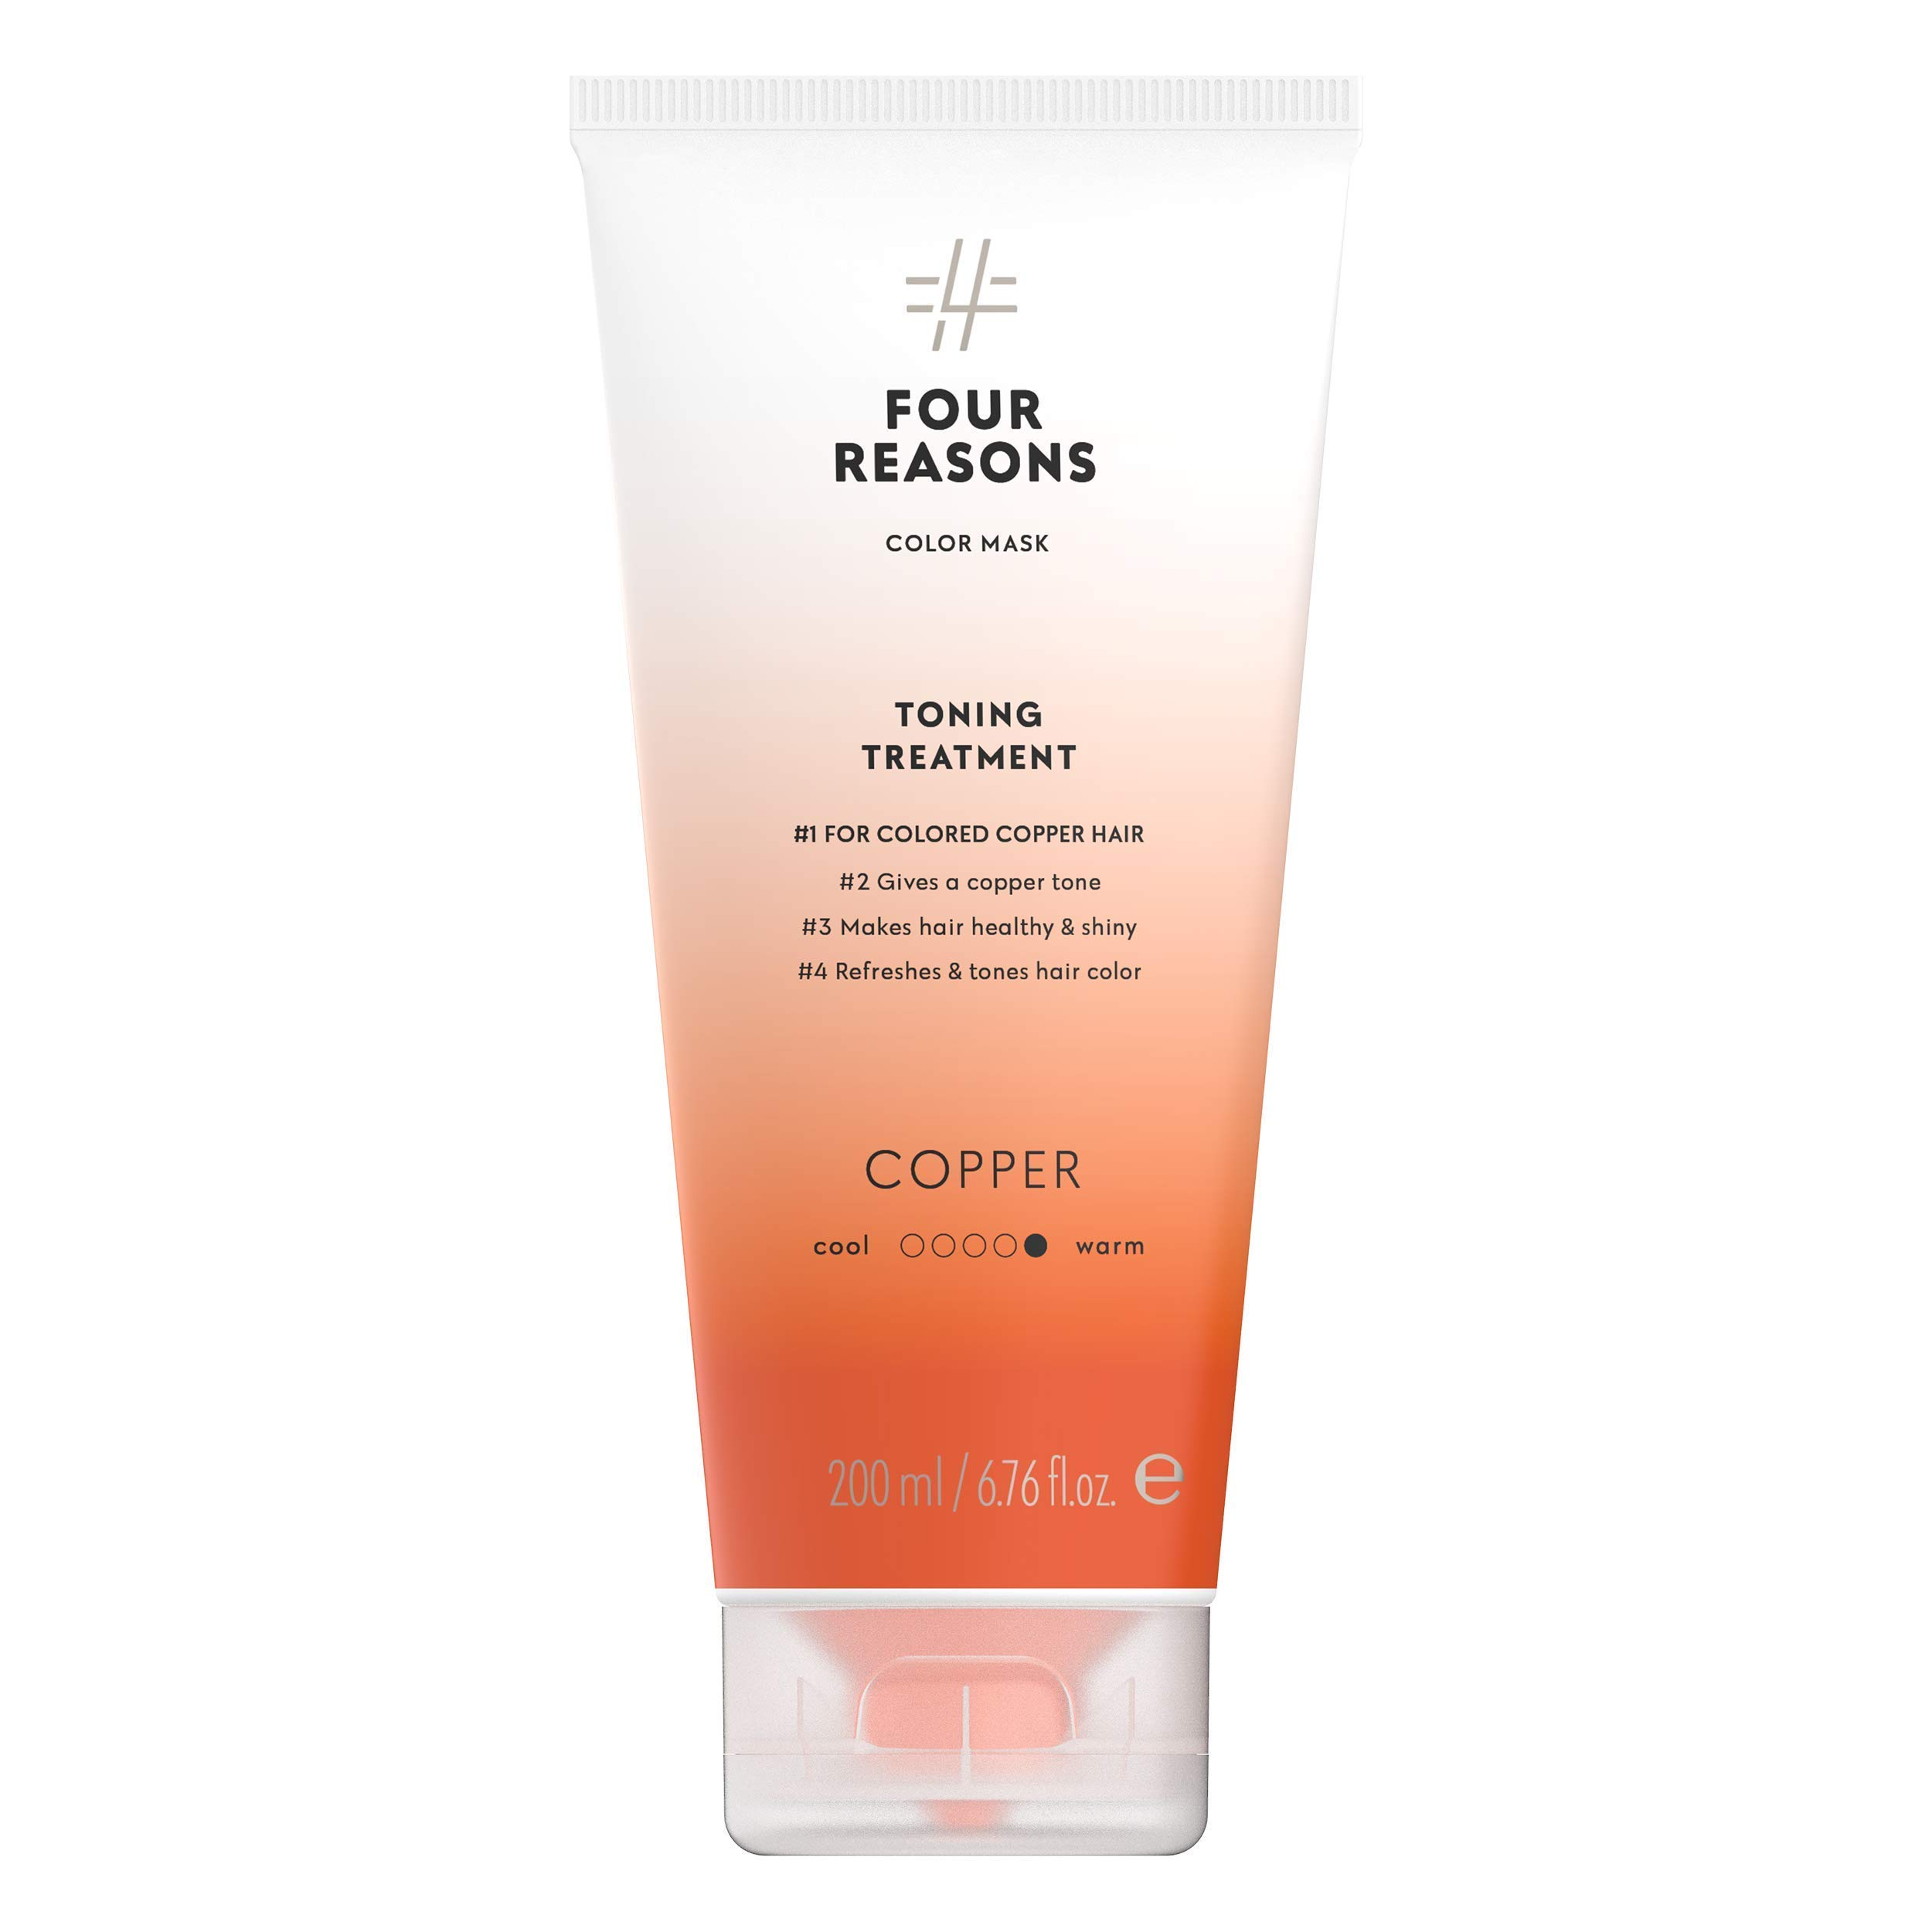 Four Reasons Color Mask - Copper - (19 Colors) Toning Treatment, Color Depositing Conditioner, Tone & Enhance Color-Treated Hair - Semi Permanent Hair Dye, Vegan and Cruelty-Free, 6.76 fl oz